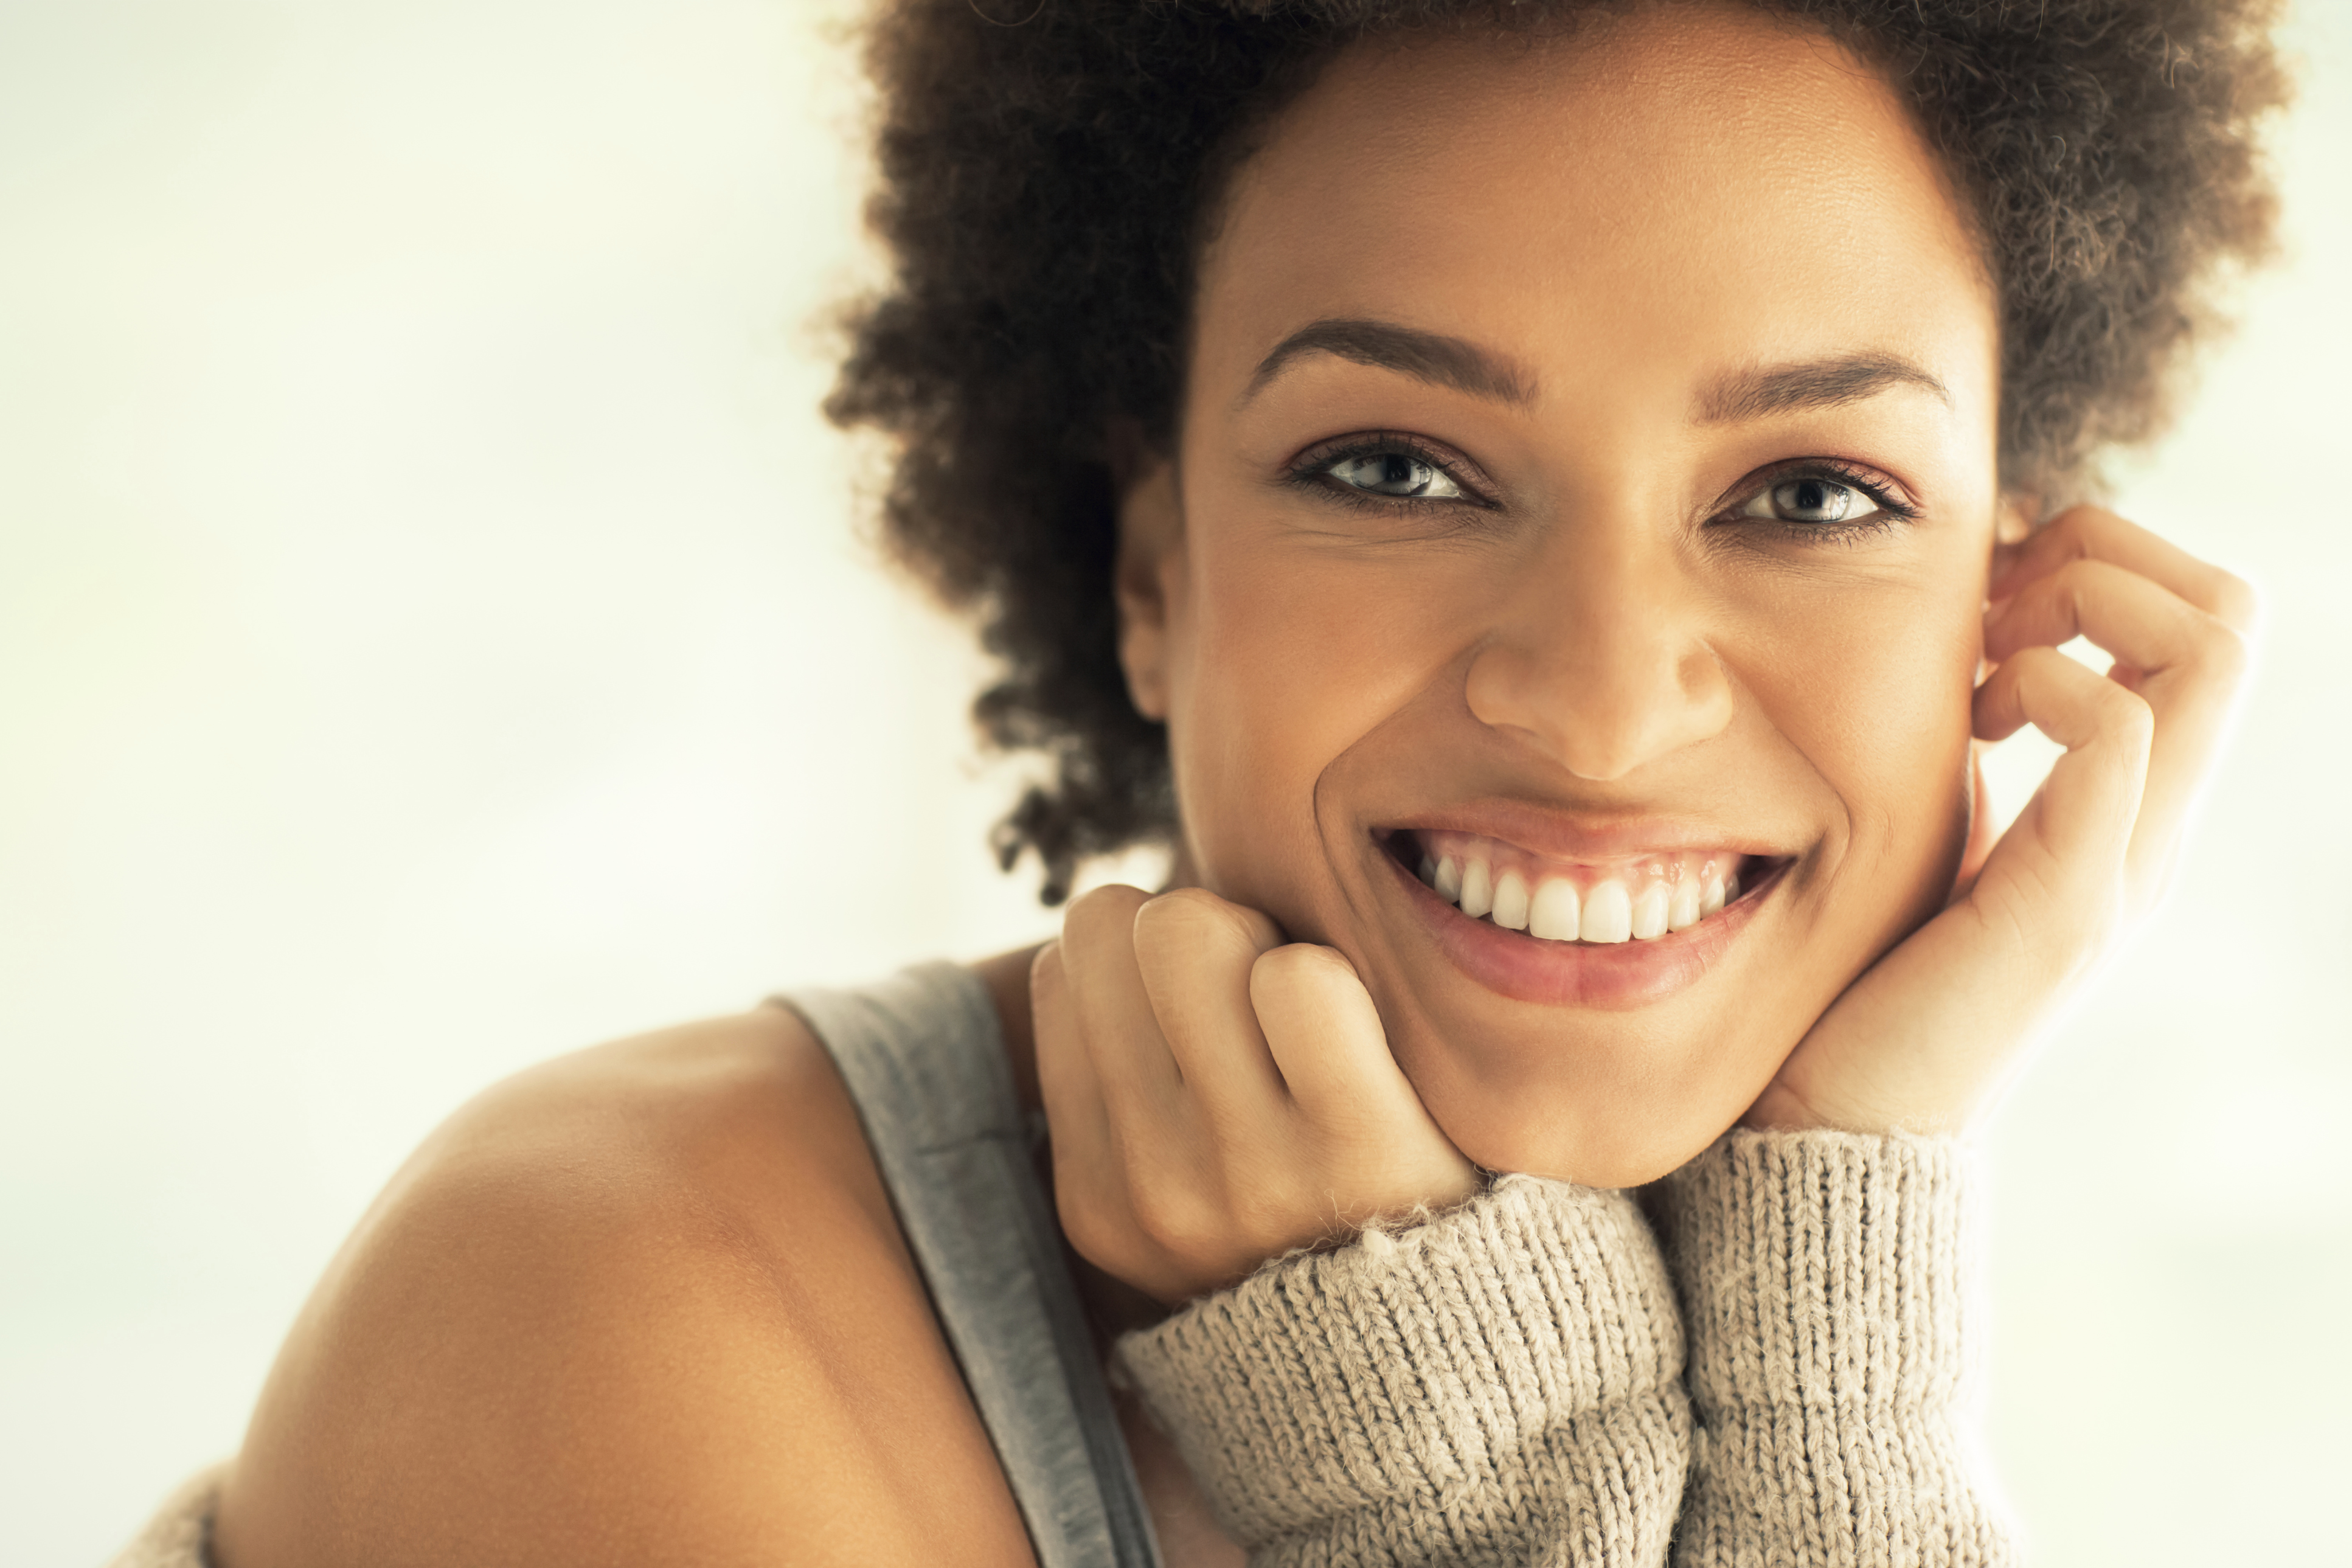 166669575-African-American-Woman-Smiling